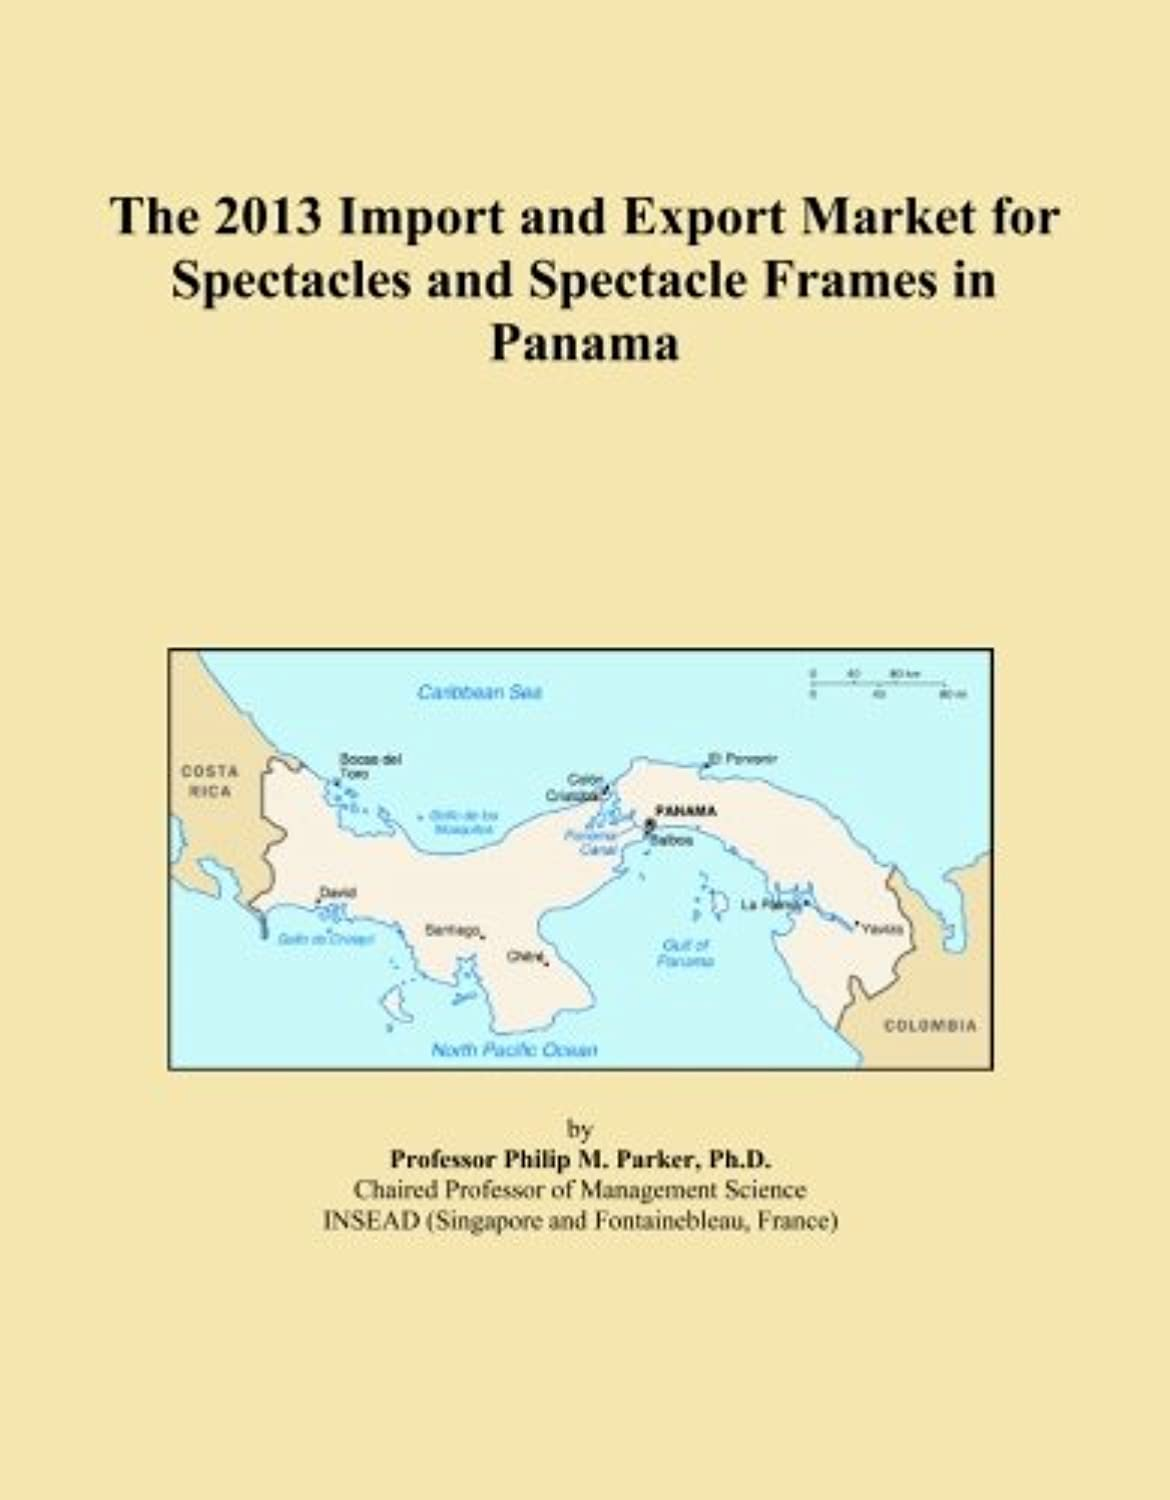 The 2013 Import and Export Market for Spectacles and Spectacle Frames in Panama